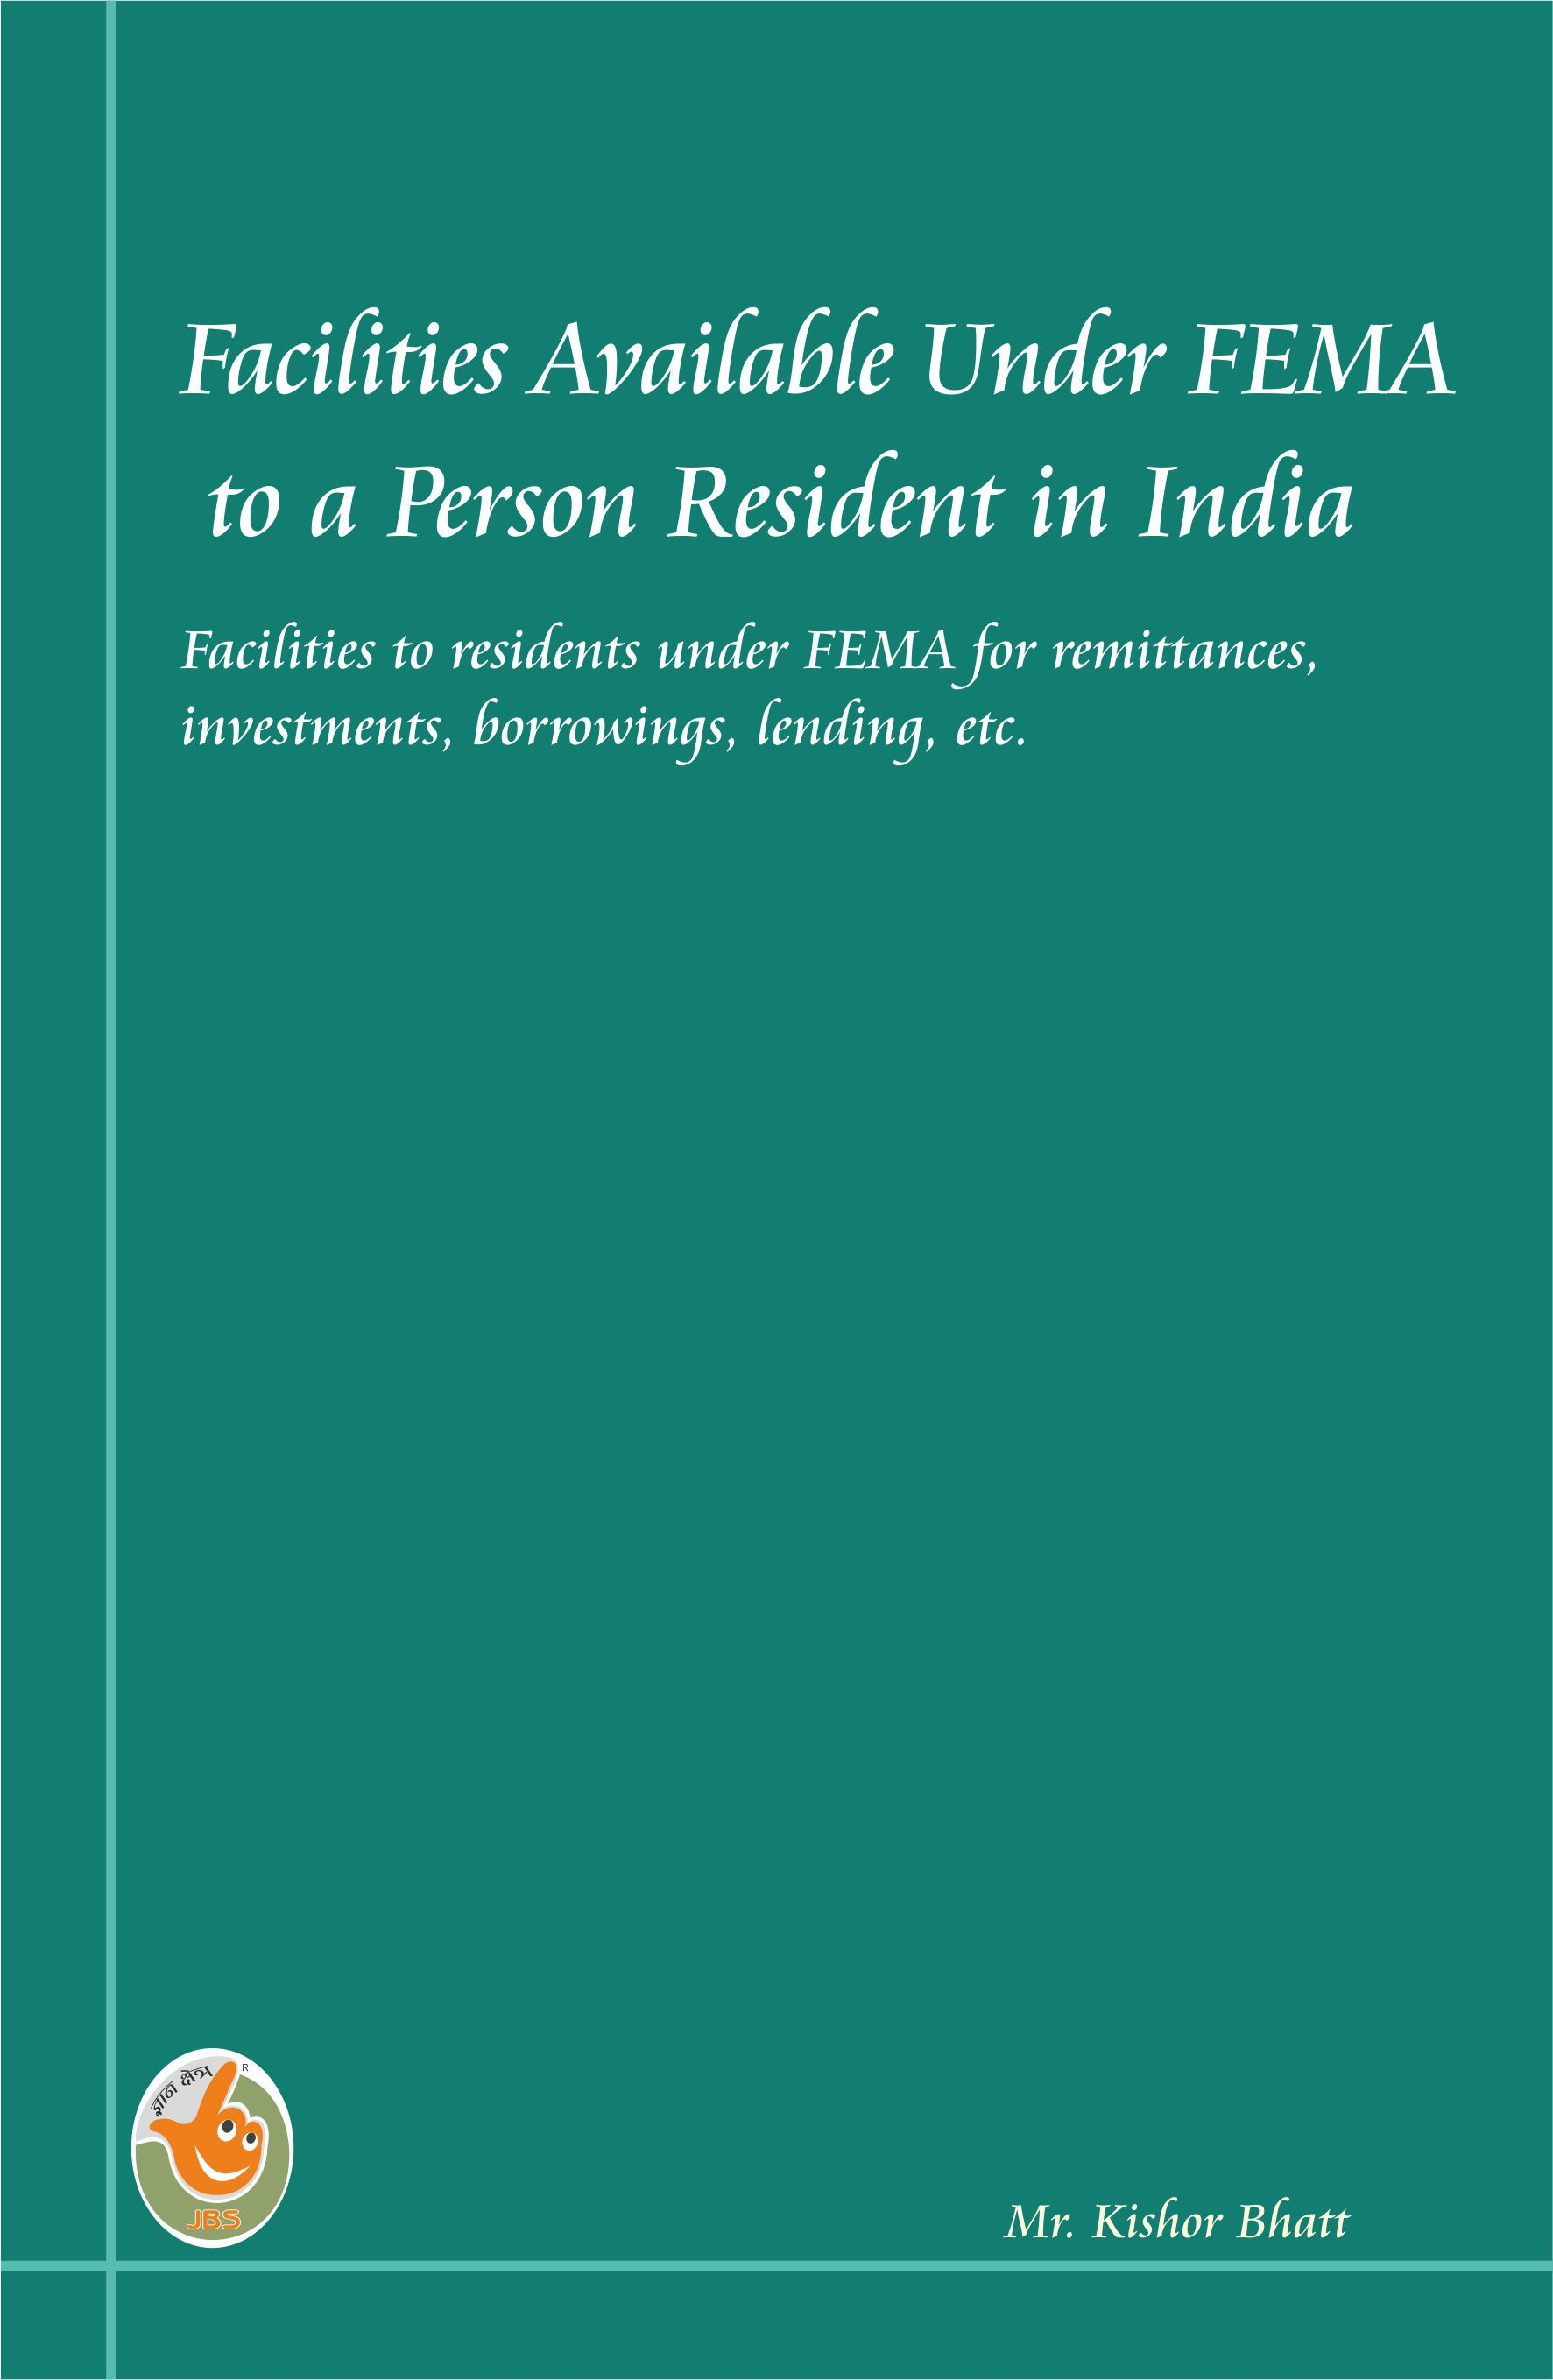 Facilities Available Under FEMA to a Person Residnet in India